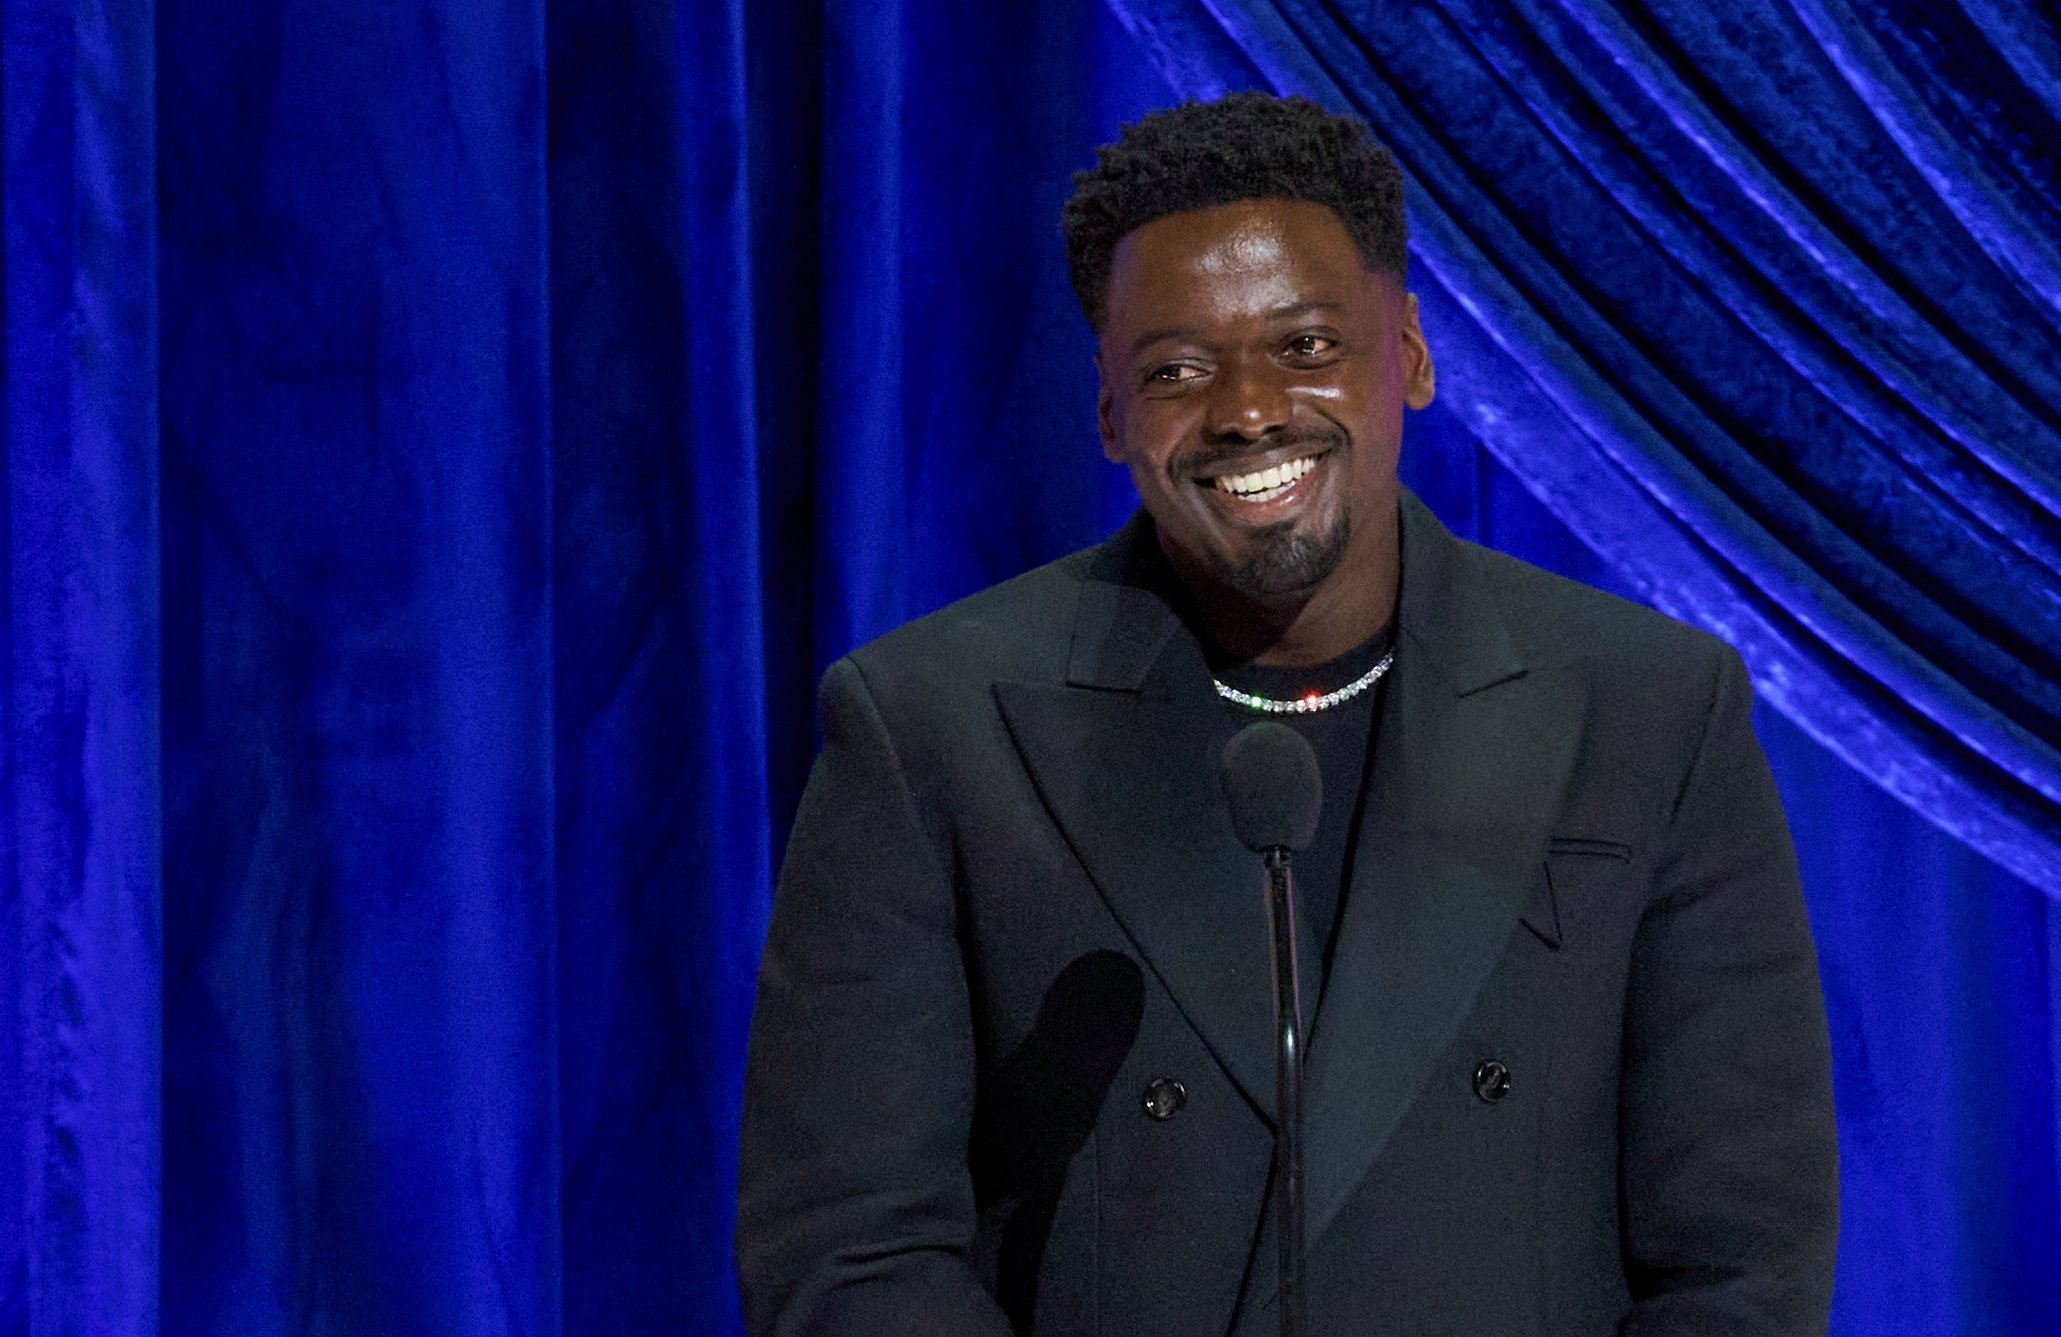 Daniel Kaluuya accepts the Oscar for Best Actor in a Supporting Role during the live ABC Telecast of The 93rd Oscars in Los Angeles, California, U.S., April 25, 2021. (REUTERS Photo)